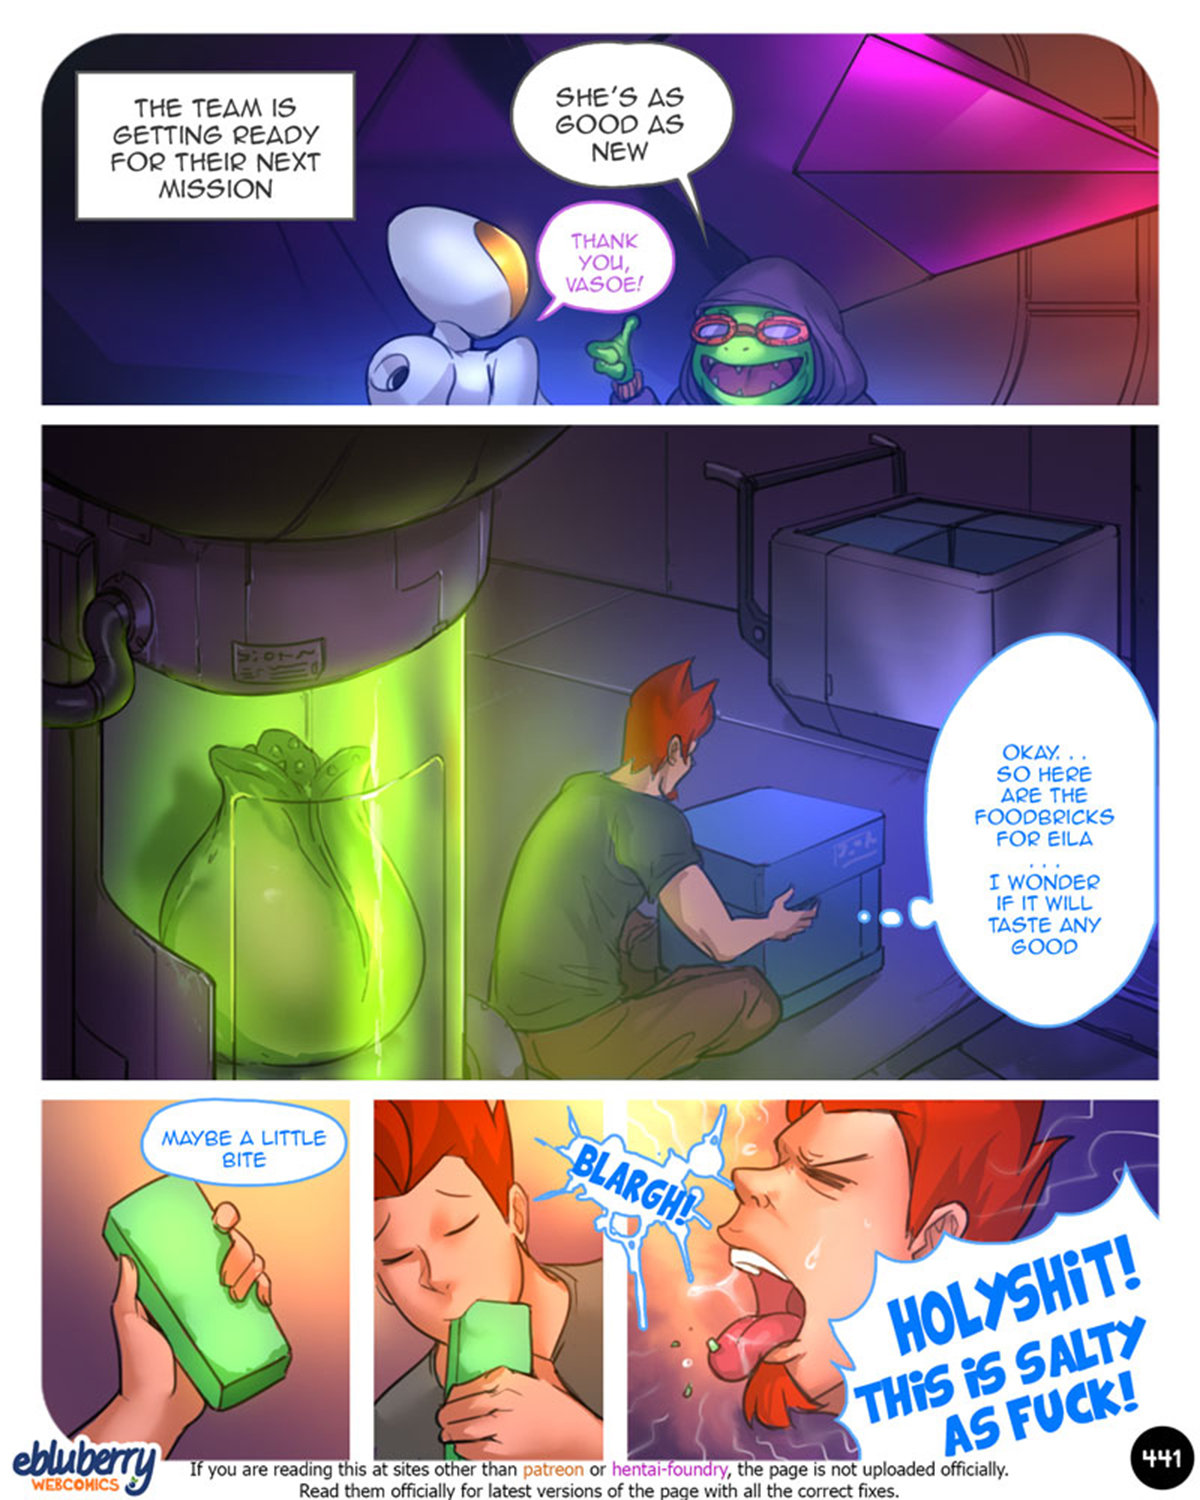 002 7 - S.EXpedition - [Ebluberry]. Part 22.